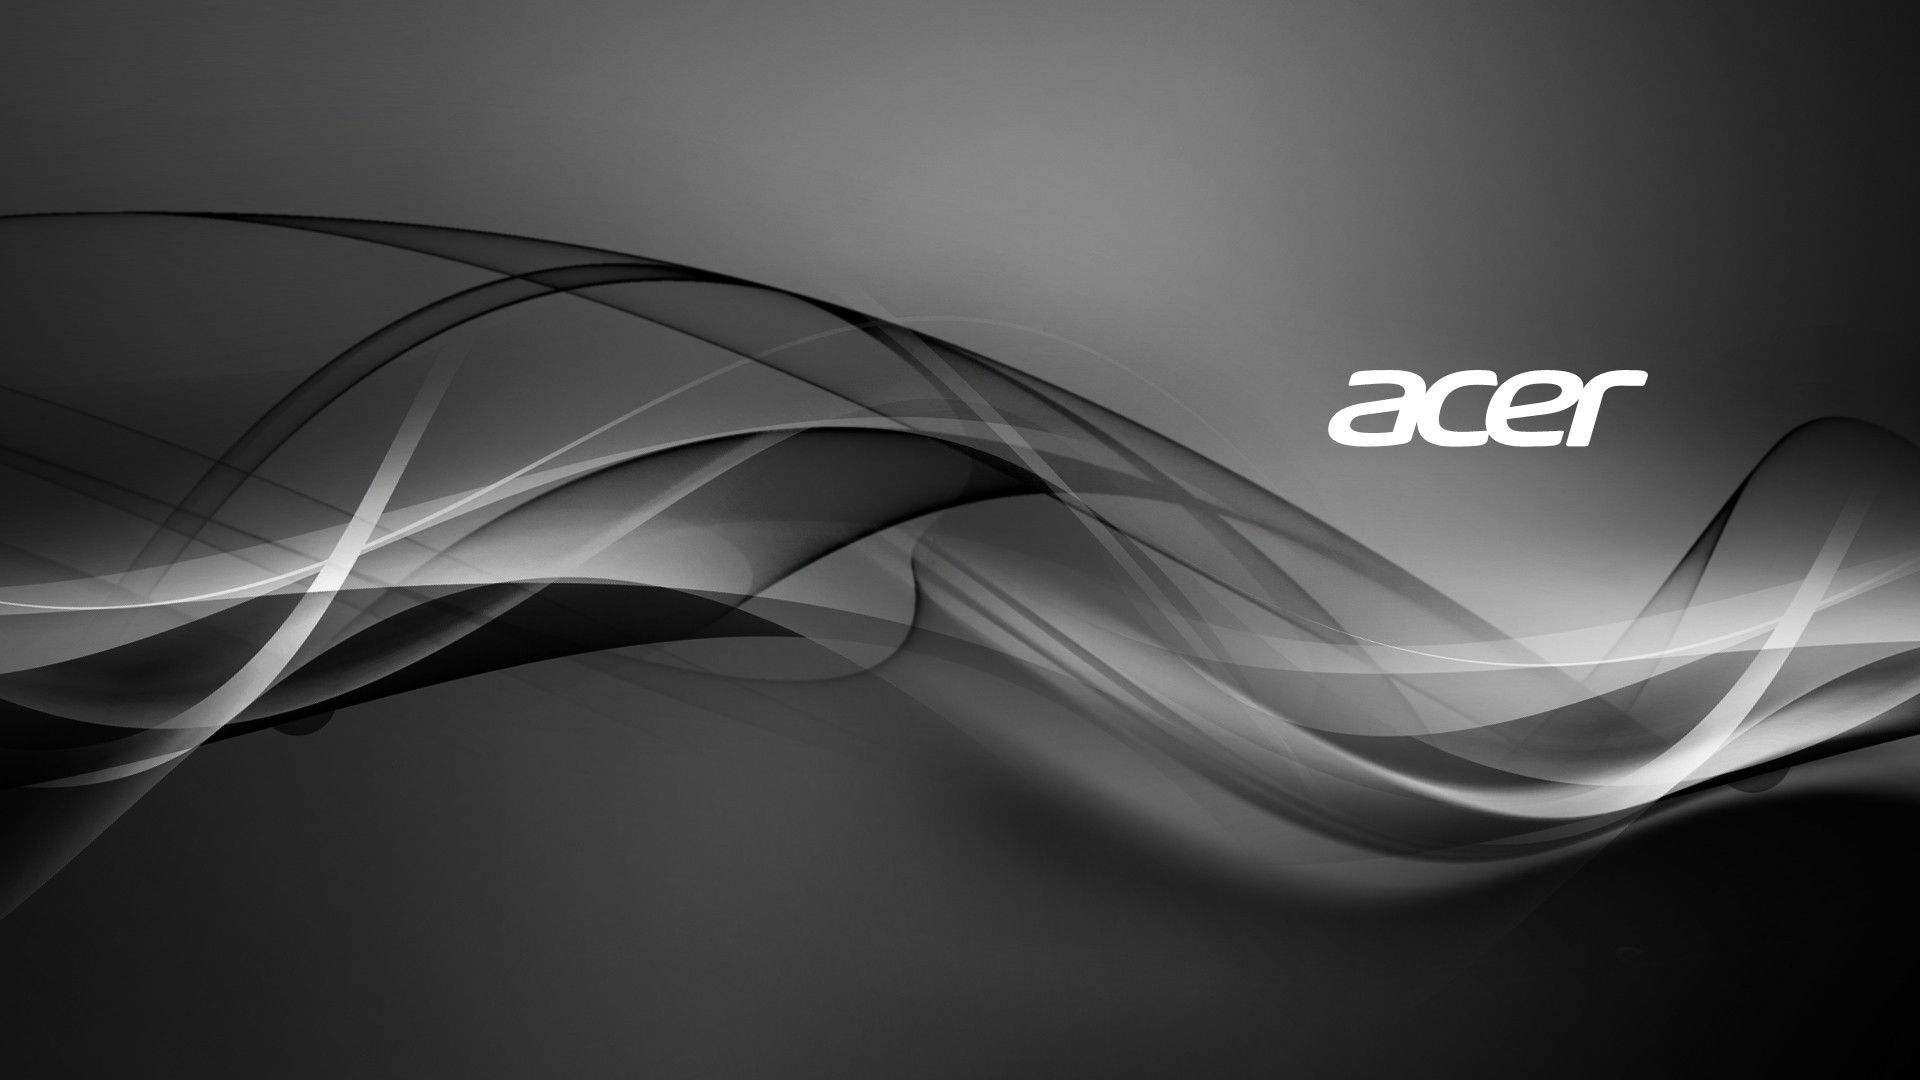 1920x1080 Acer Aspire Black And White Wallpaper 1920x1080 1080p Wallpaper Acer Desktop Laptop Acer Wallpaper Notebook